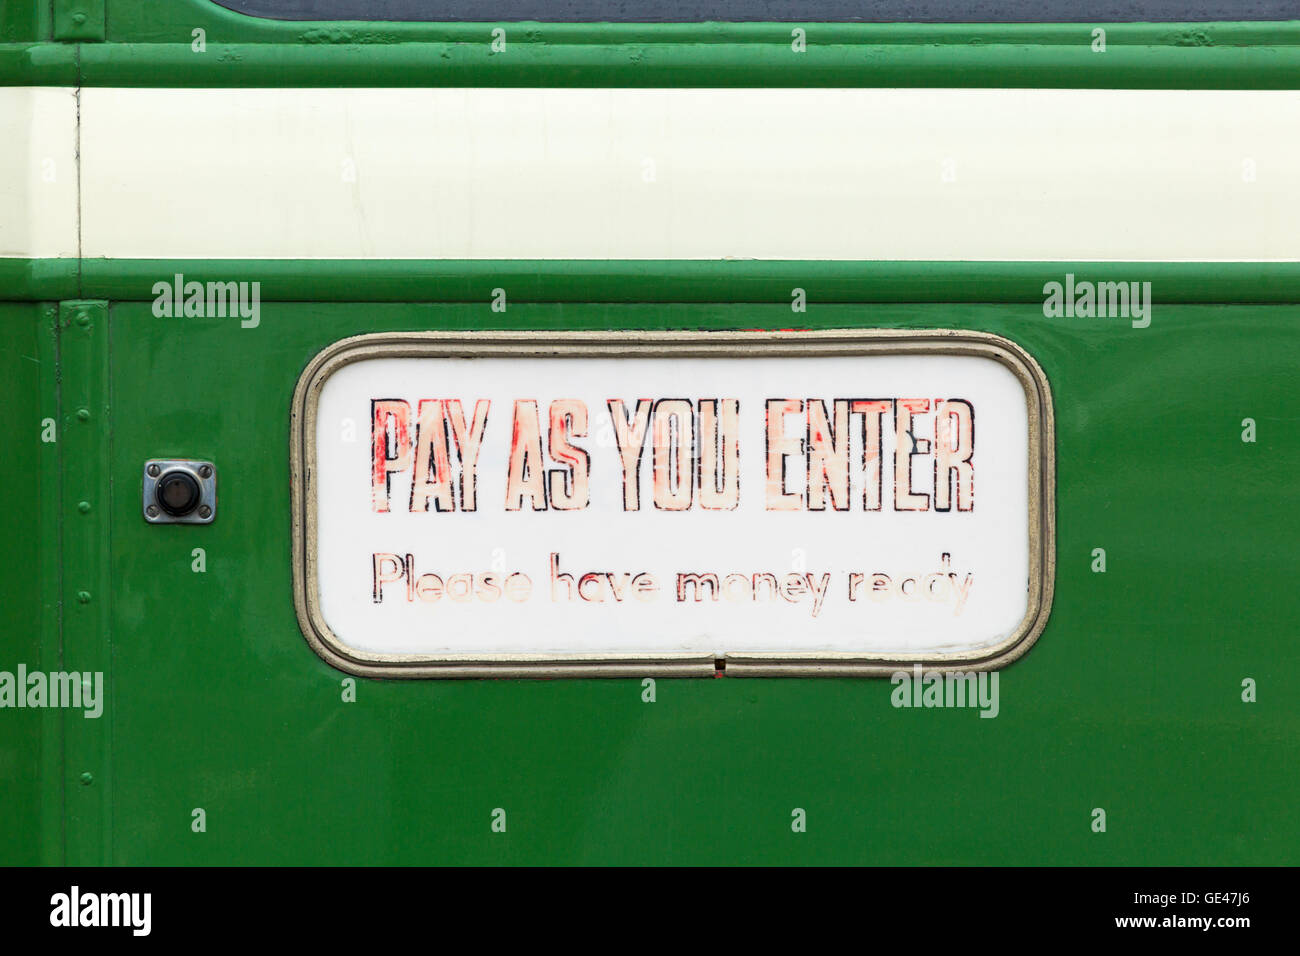 Pay as you enter please have money ready faded sign on bus at Poole to celebrate Hants & Dorset (More Bus) centenary - Stock Image